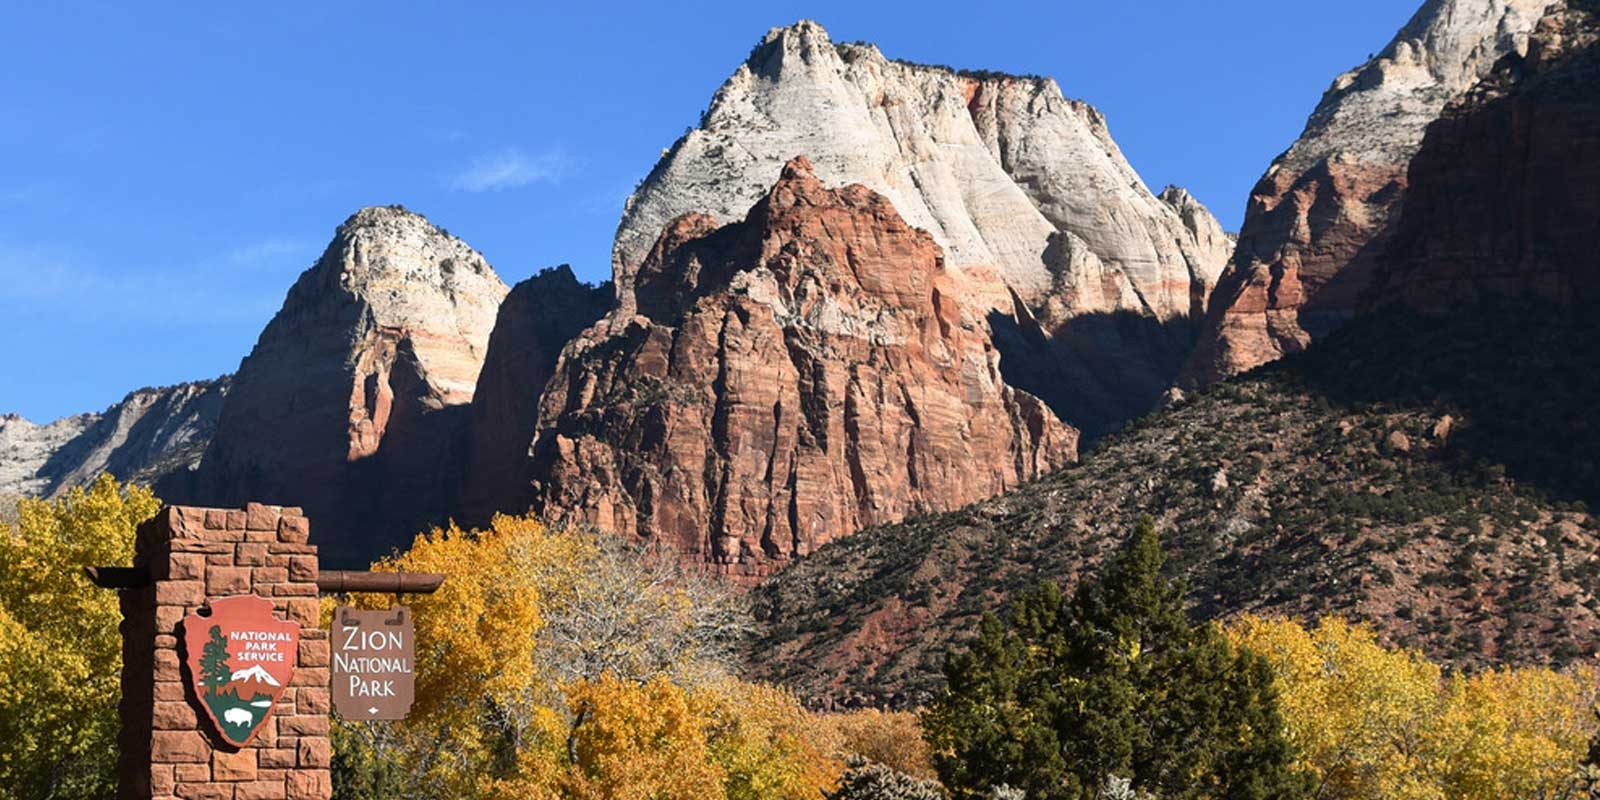 Landscape of an entrance for Zion National Park with perfect blue skies, trees with yellow and orange leaves, and rock formations in the background.